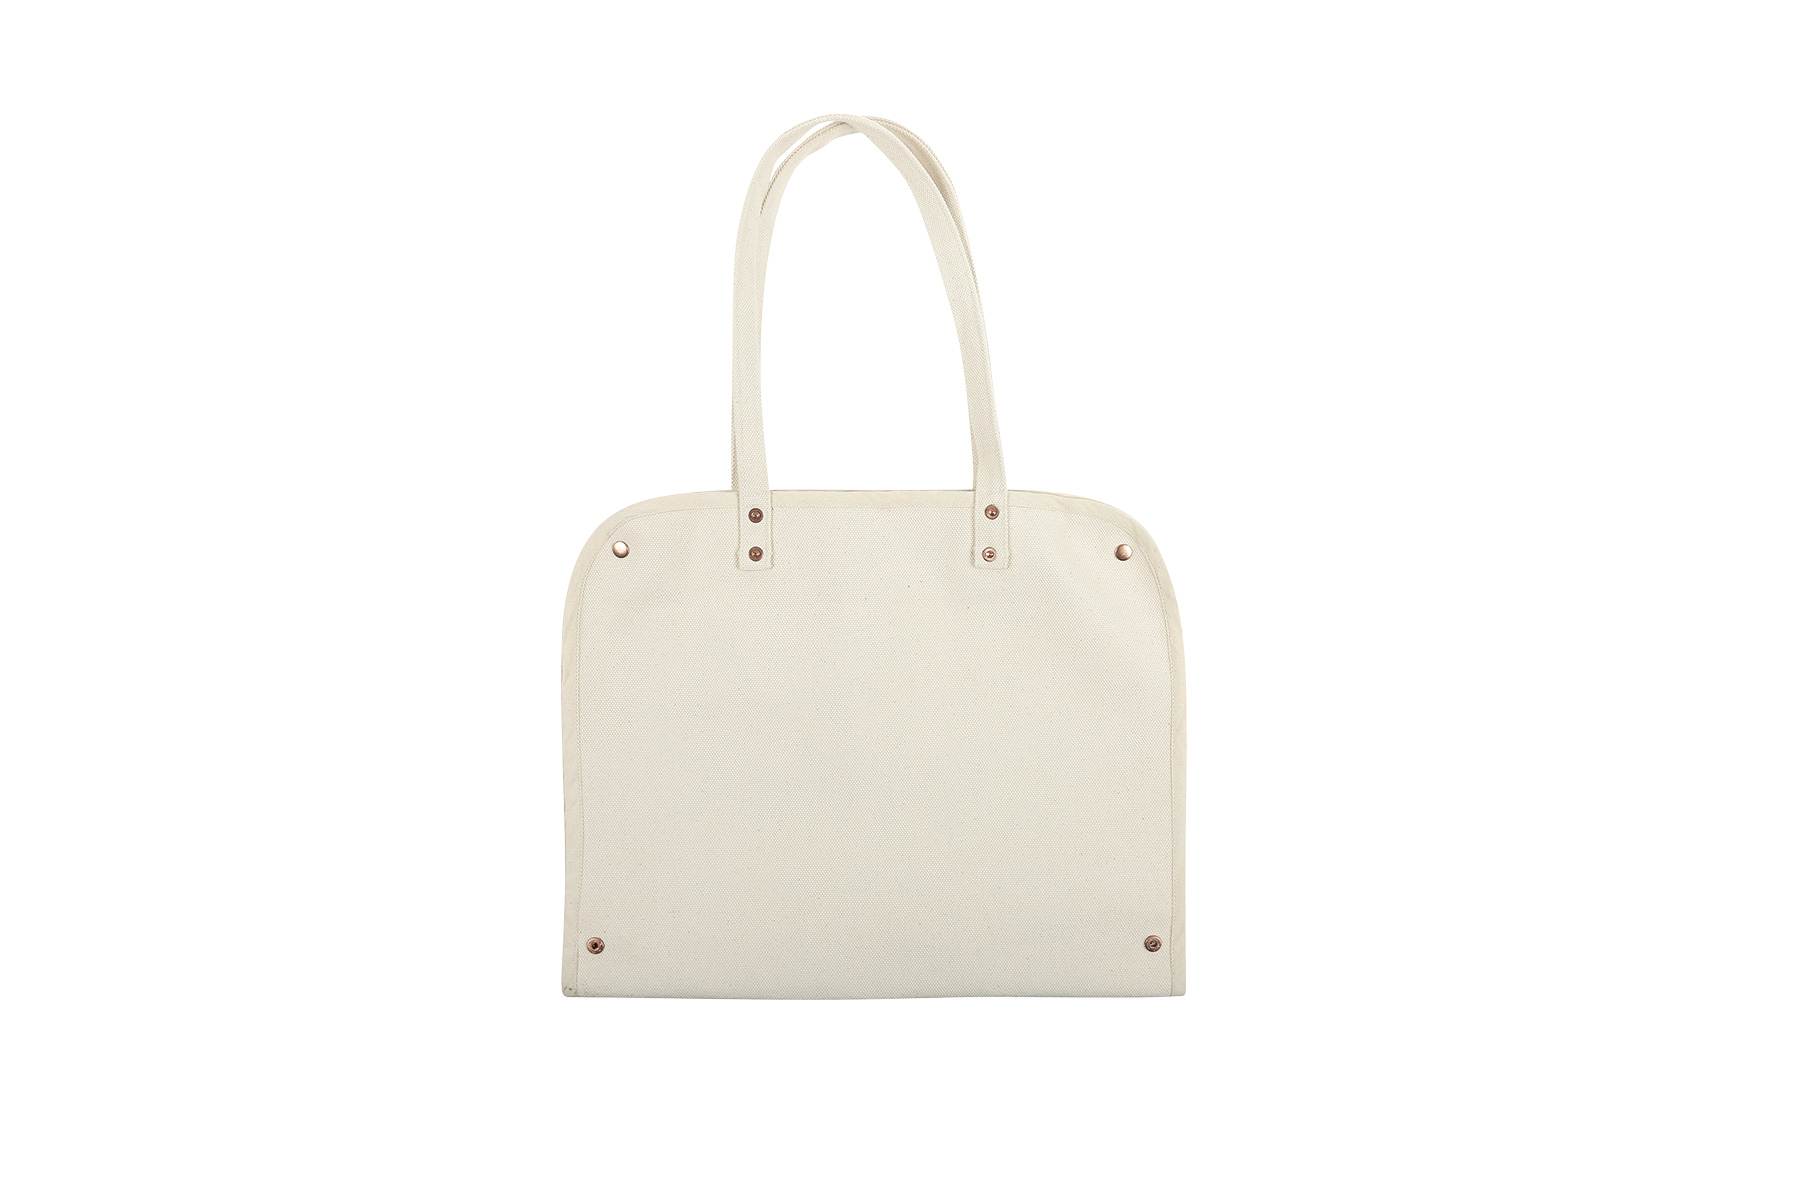 The Floral Society Canvas Market Tote